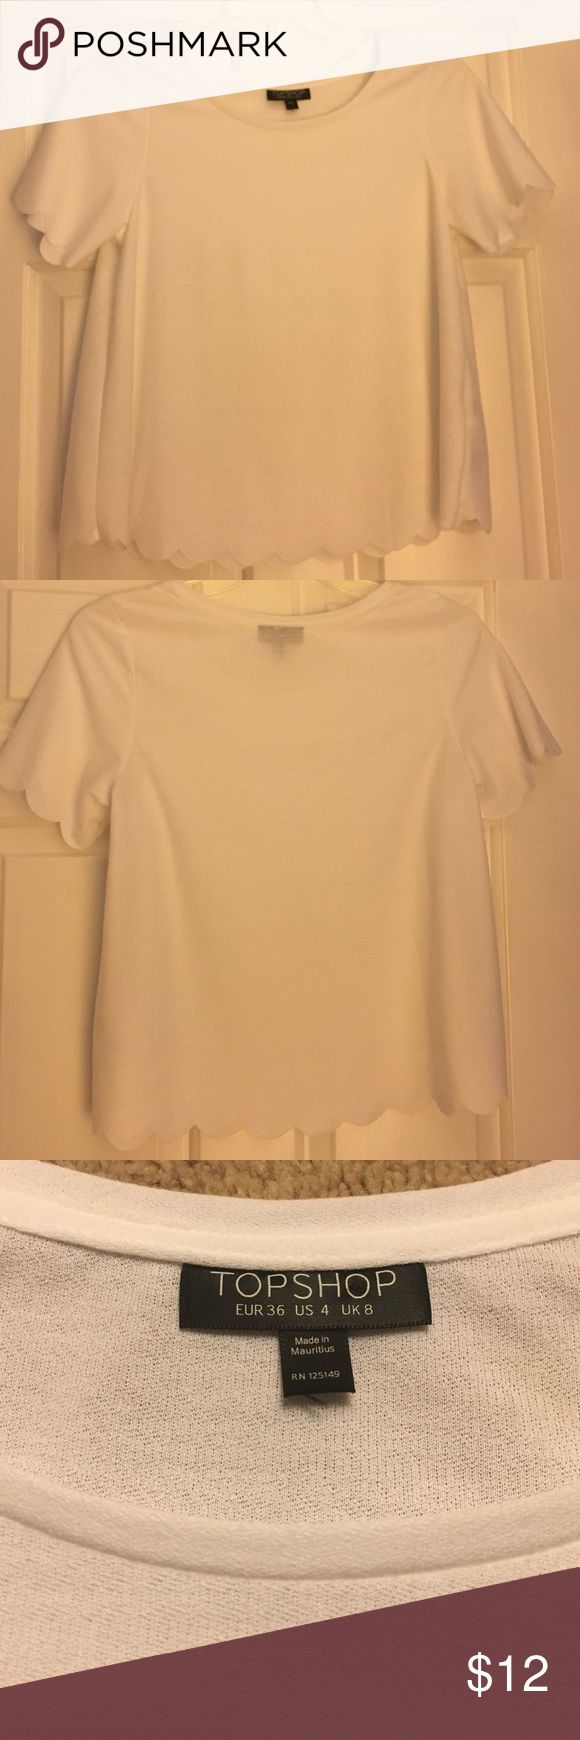 Scalloped top White, scalloped top! Good condition! Topshop Tops Blouses